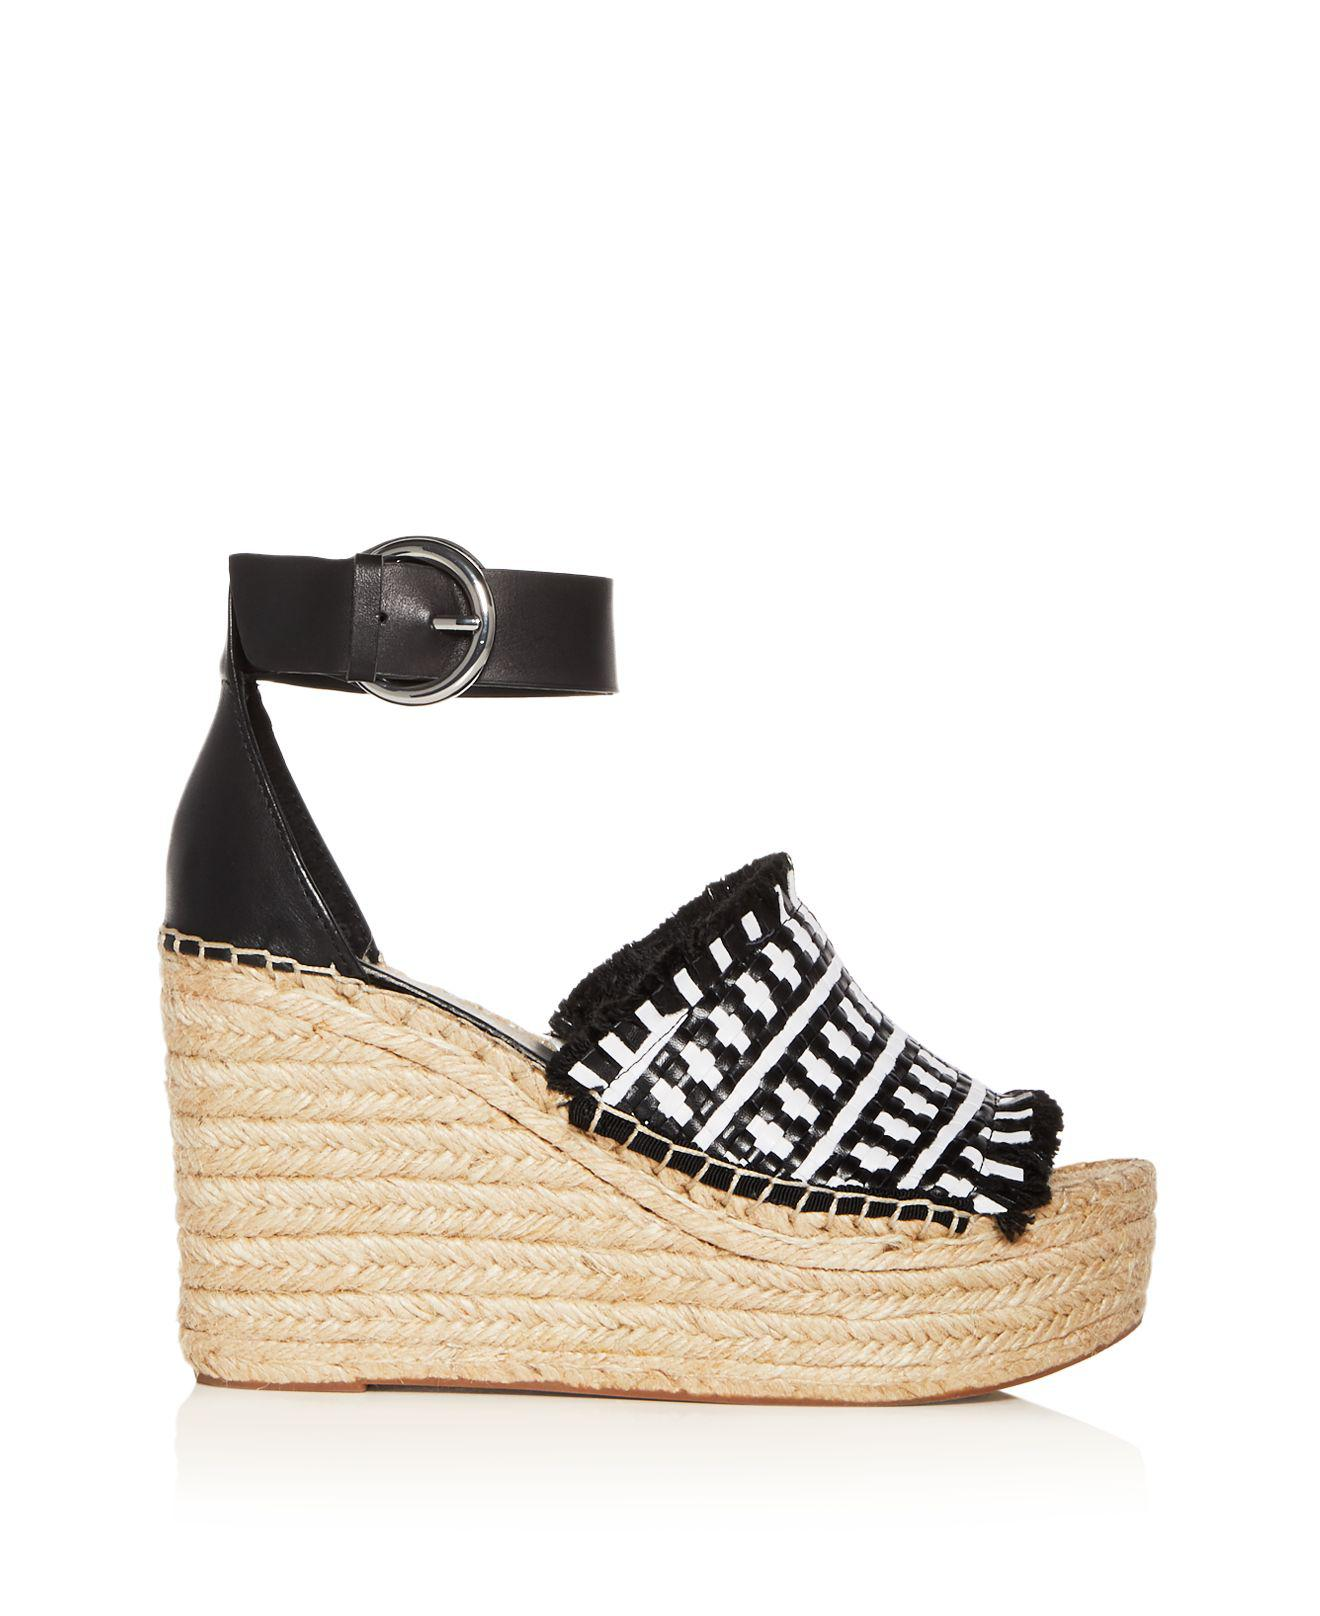 MARC FISHER Women's Andrew Woven Leather High-Heel Platform Espadrille Sandals 3bz1pSkKn